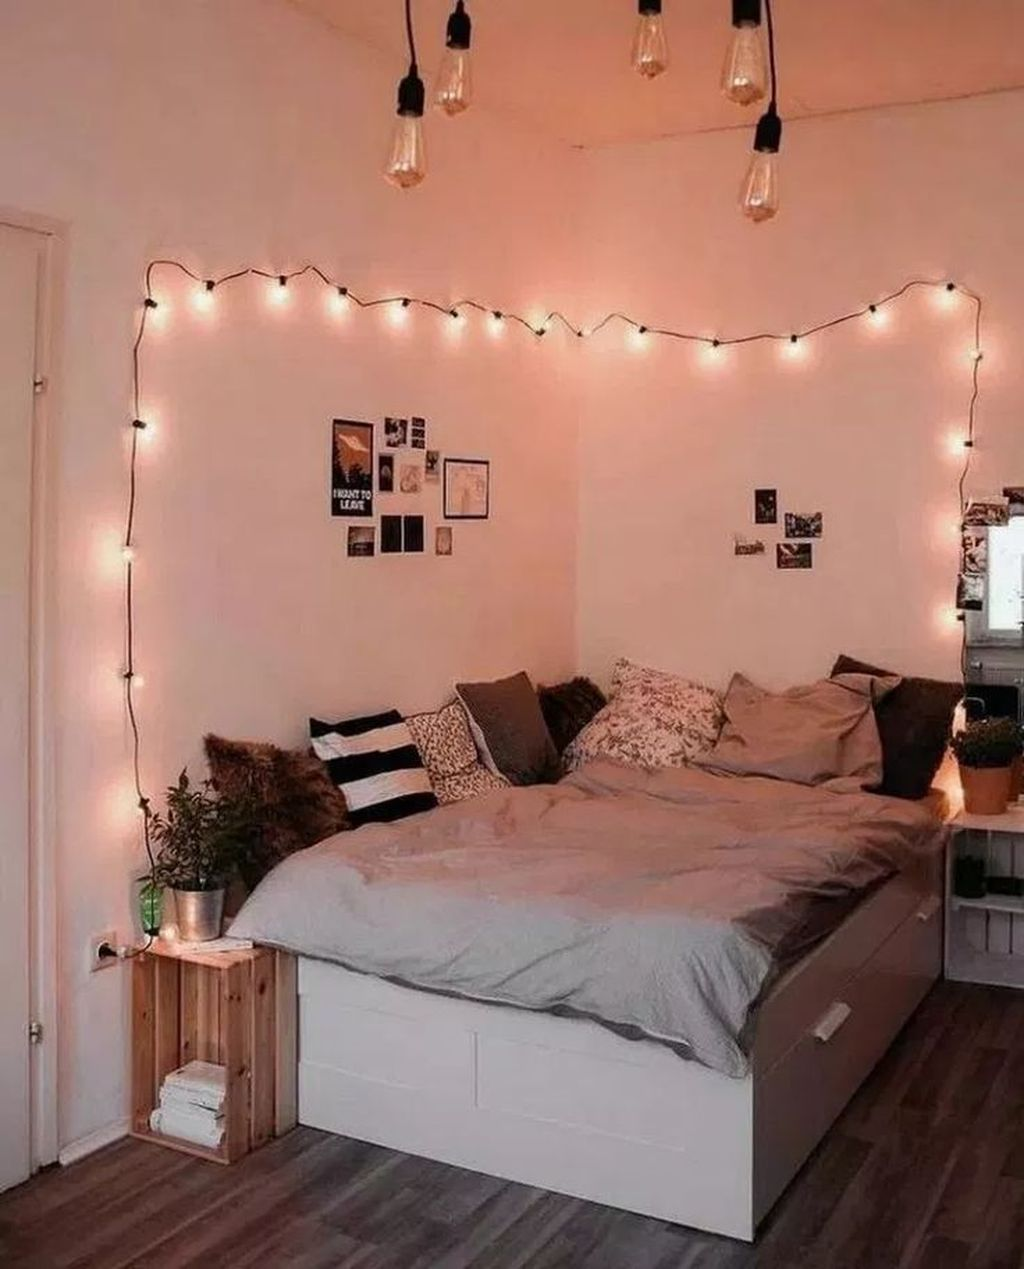 Admirable Small Bedroom Decor Ideas You Never Seen Before 01